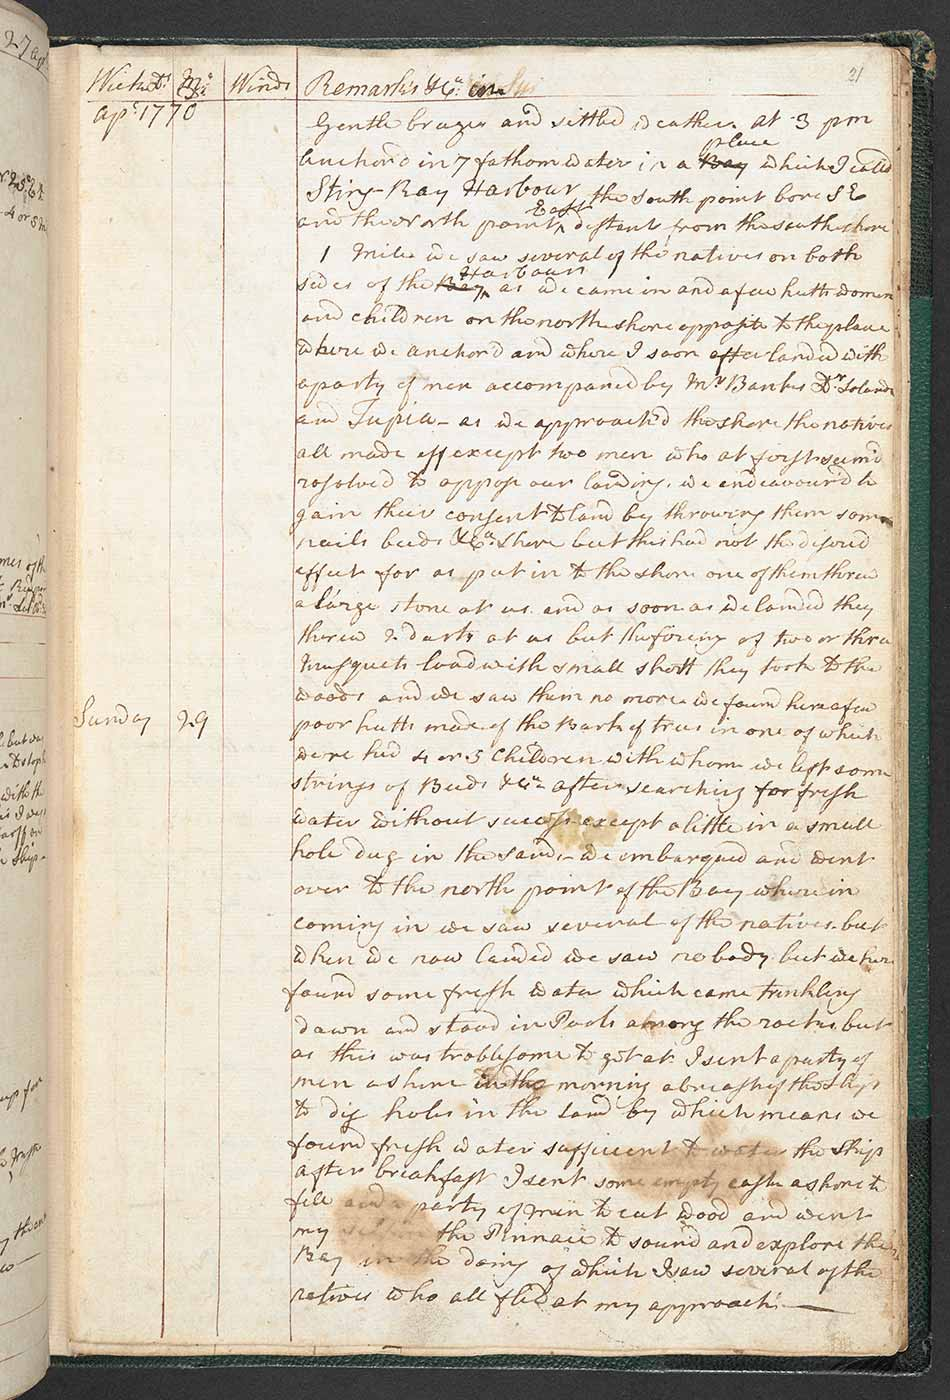 Page from a logbook featuring cursive handwriting. The pages are yellowed with age and feature various marks and stains.